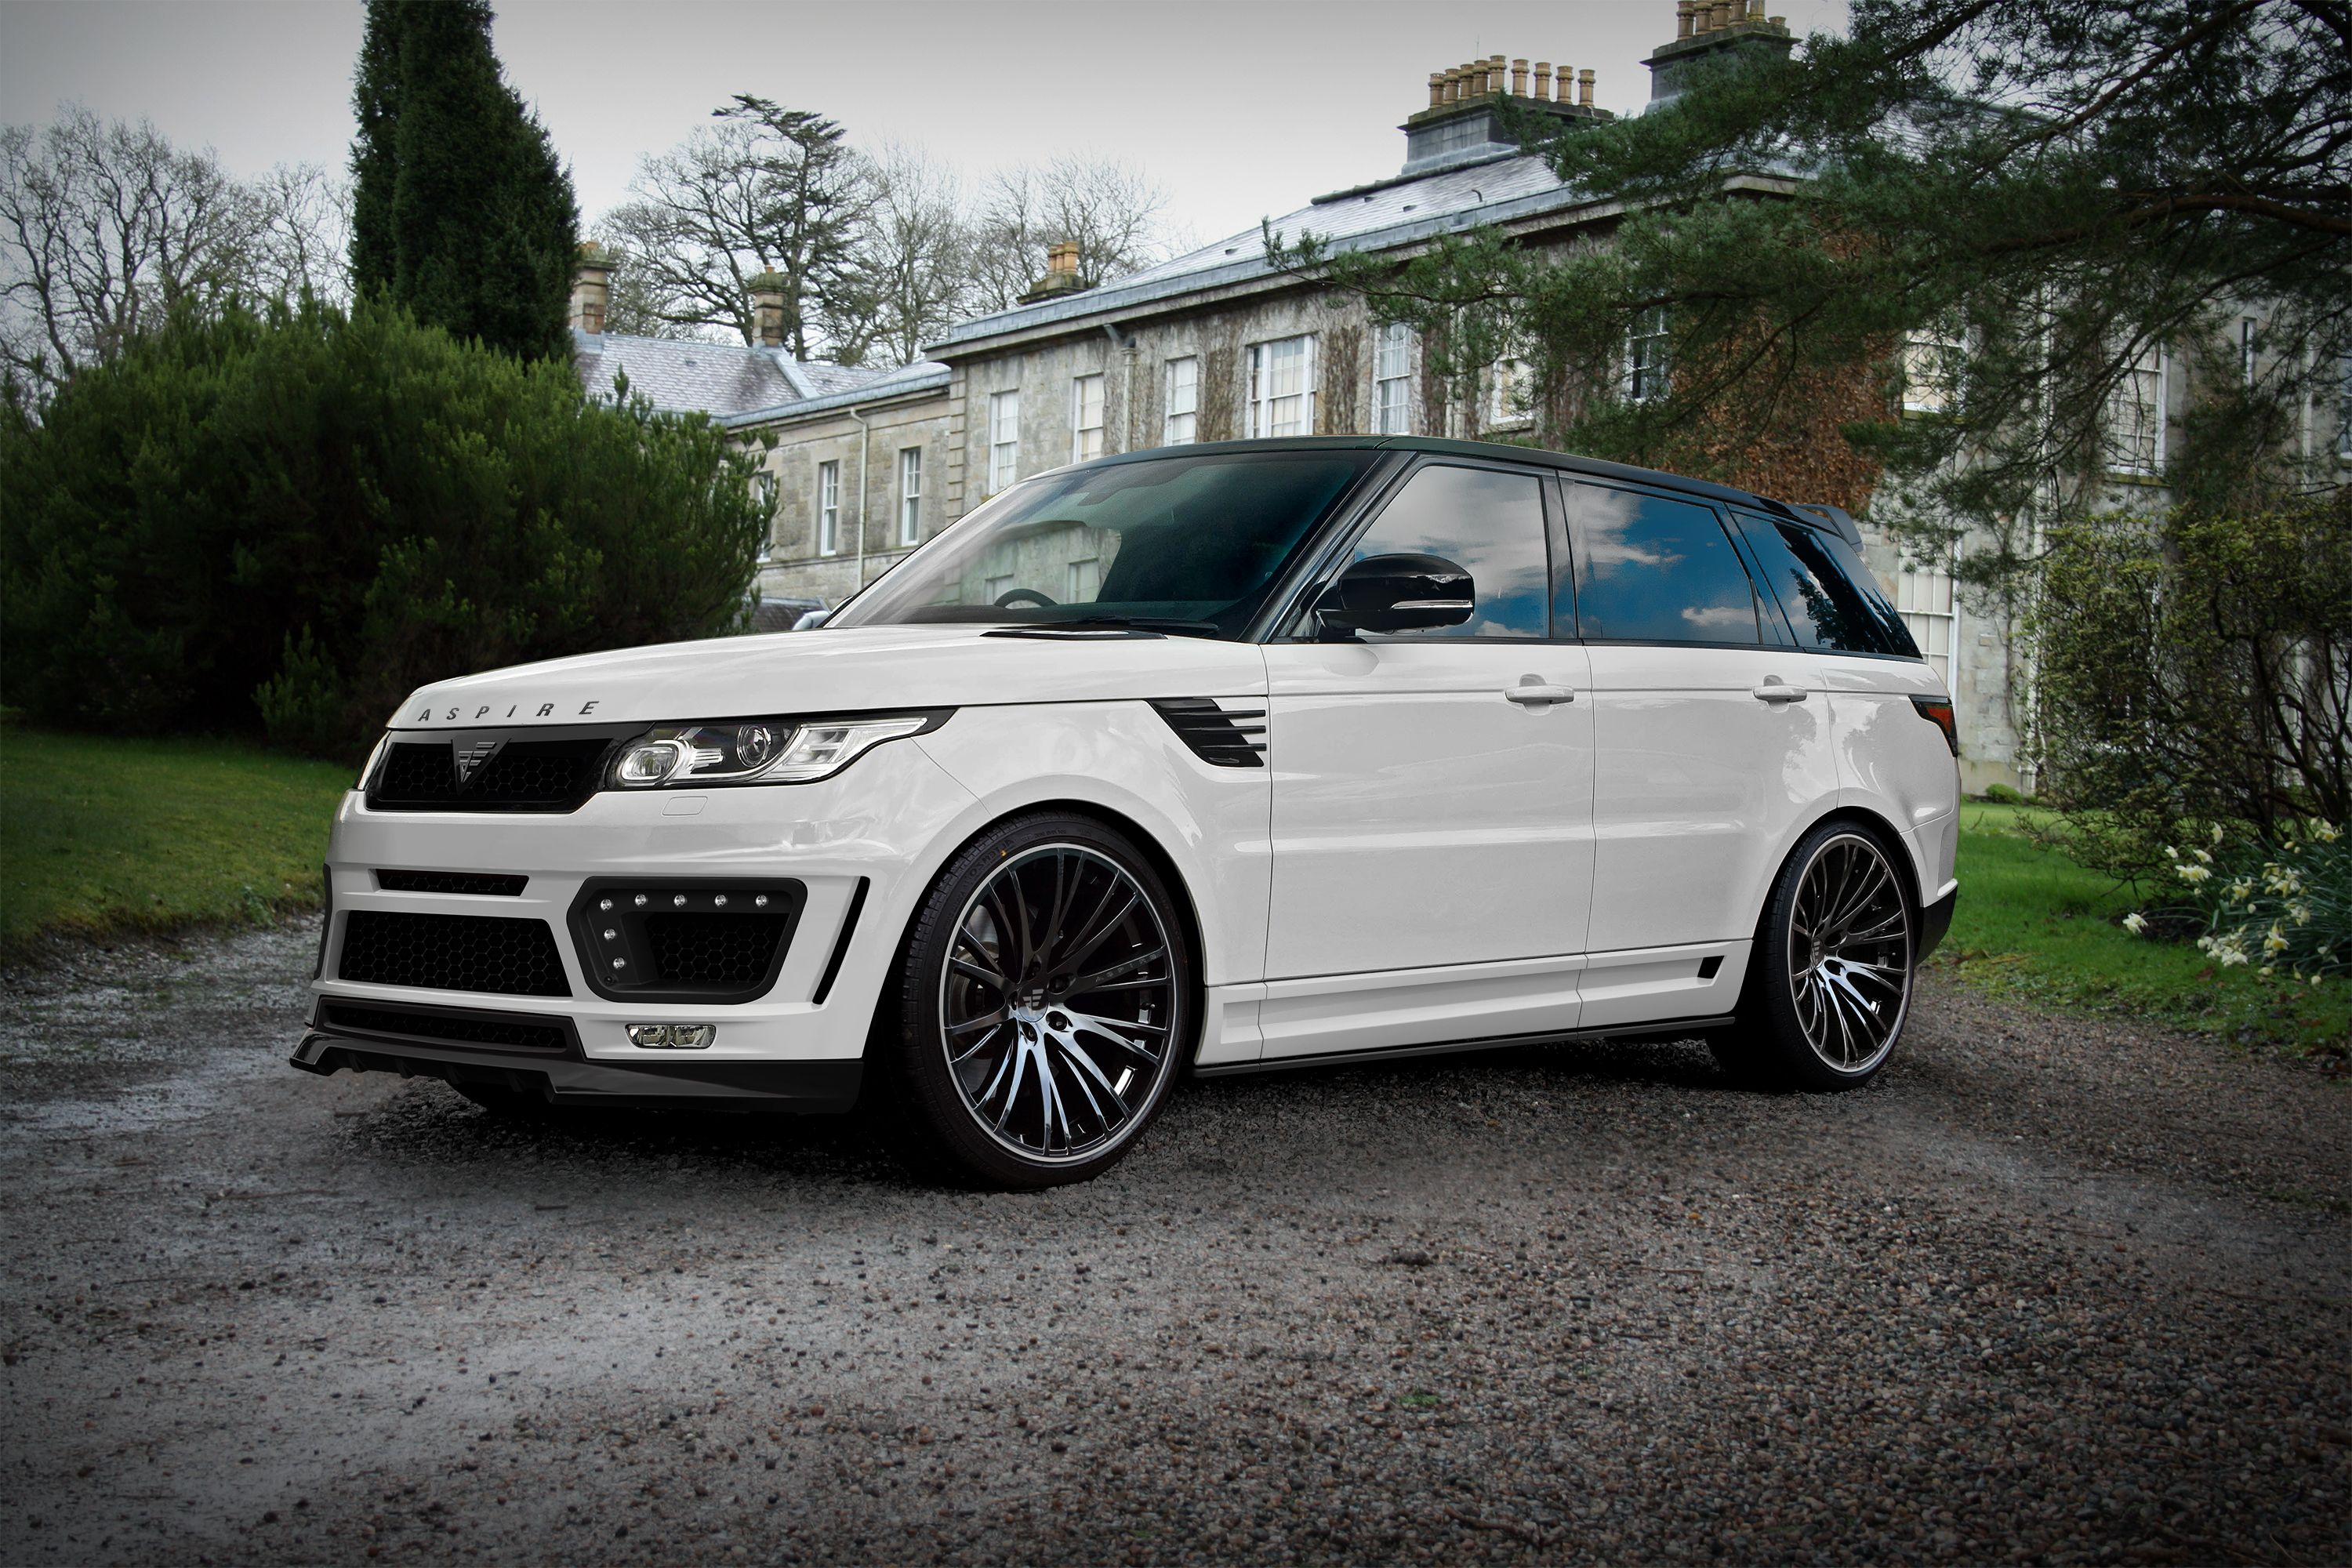 Bespoke Body Styling And Kits For The New Range Rover Sport From Aspire Www Aspire Design Co Uk Custom Range Rover Range Rover Sport Price Range Rover Sport